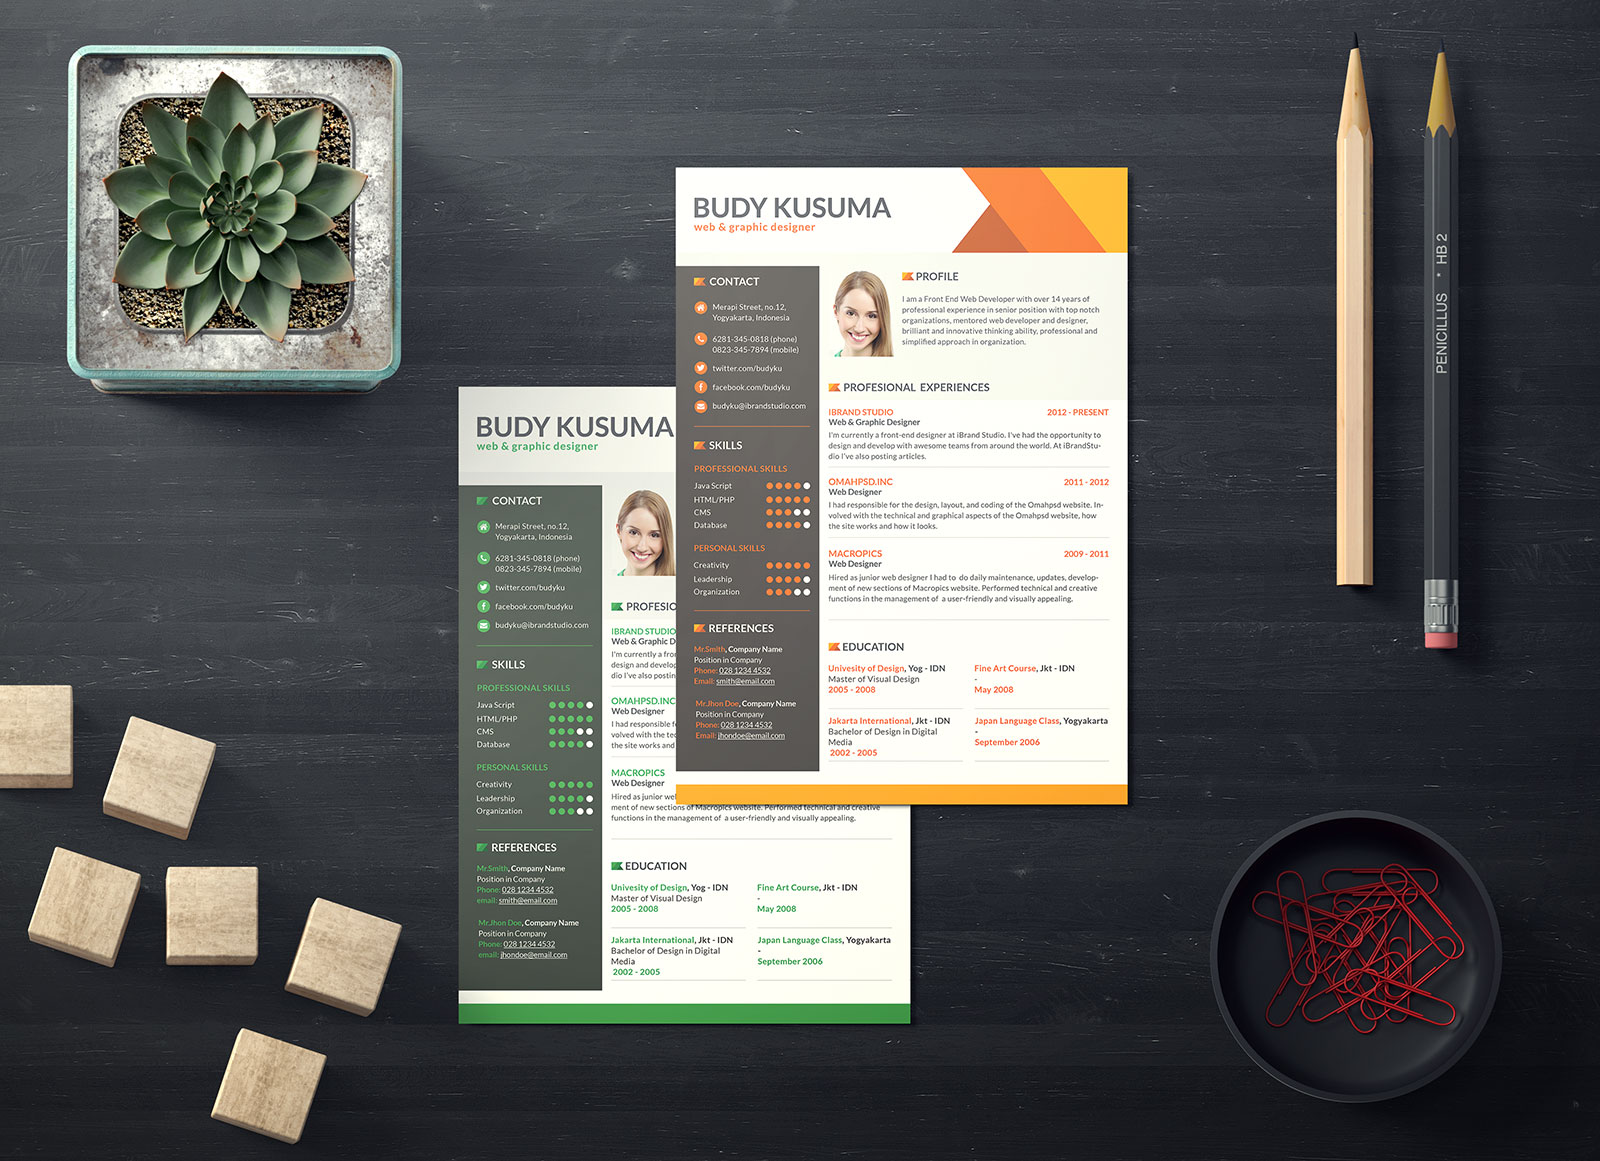 Free-Professional-Resume-Design-Templates-in-Photoshop-PSD-Format-0